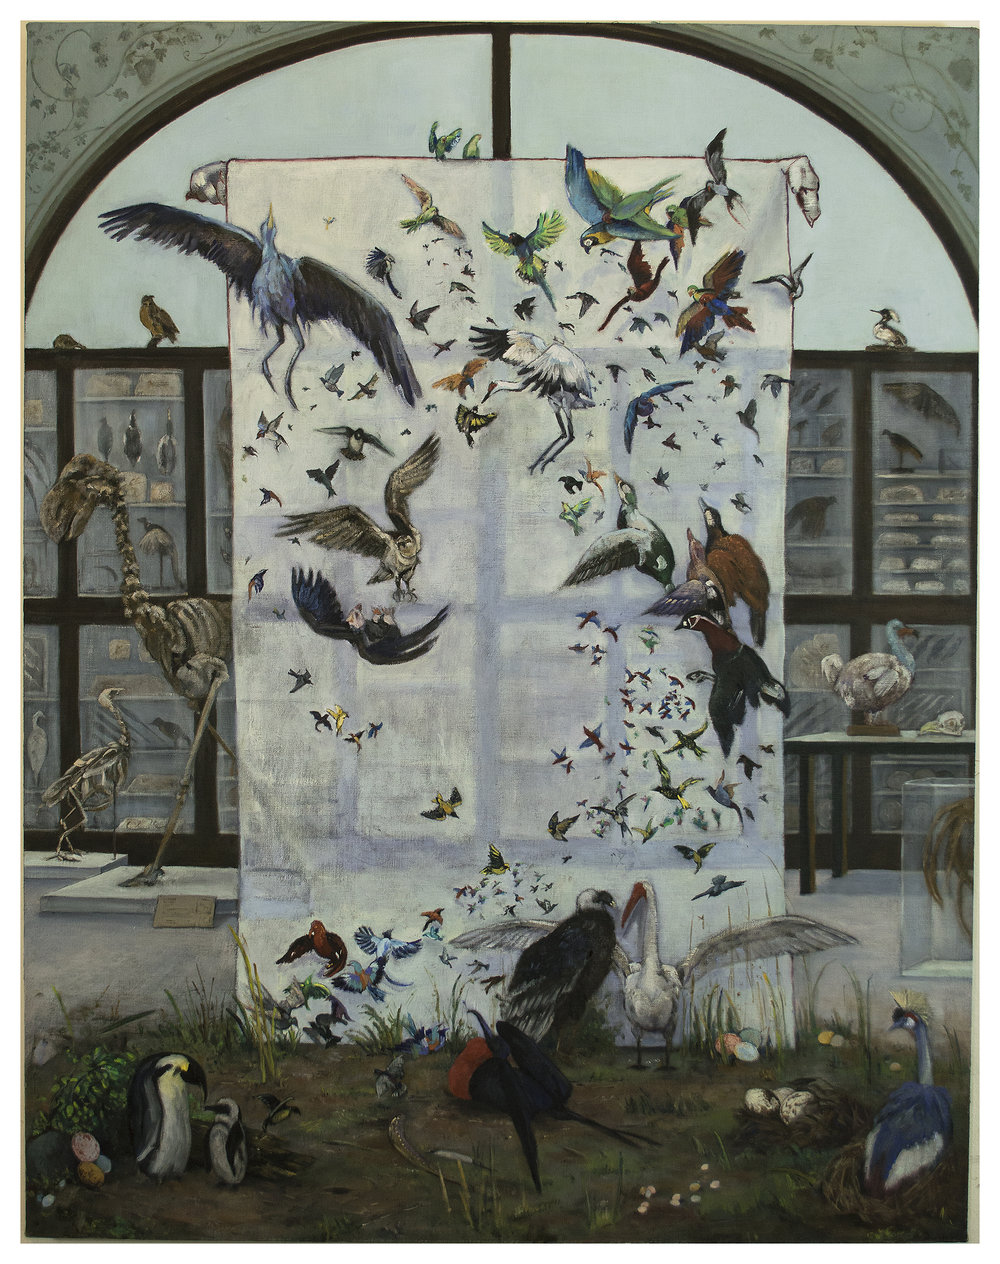 "17.  Last of Their Kind: Critically Endangered Birds   Oil paint on linen. 2018. 36"" x 28"""